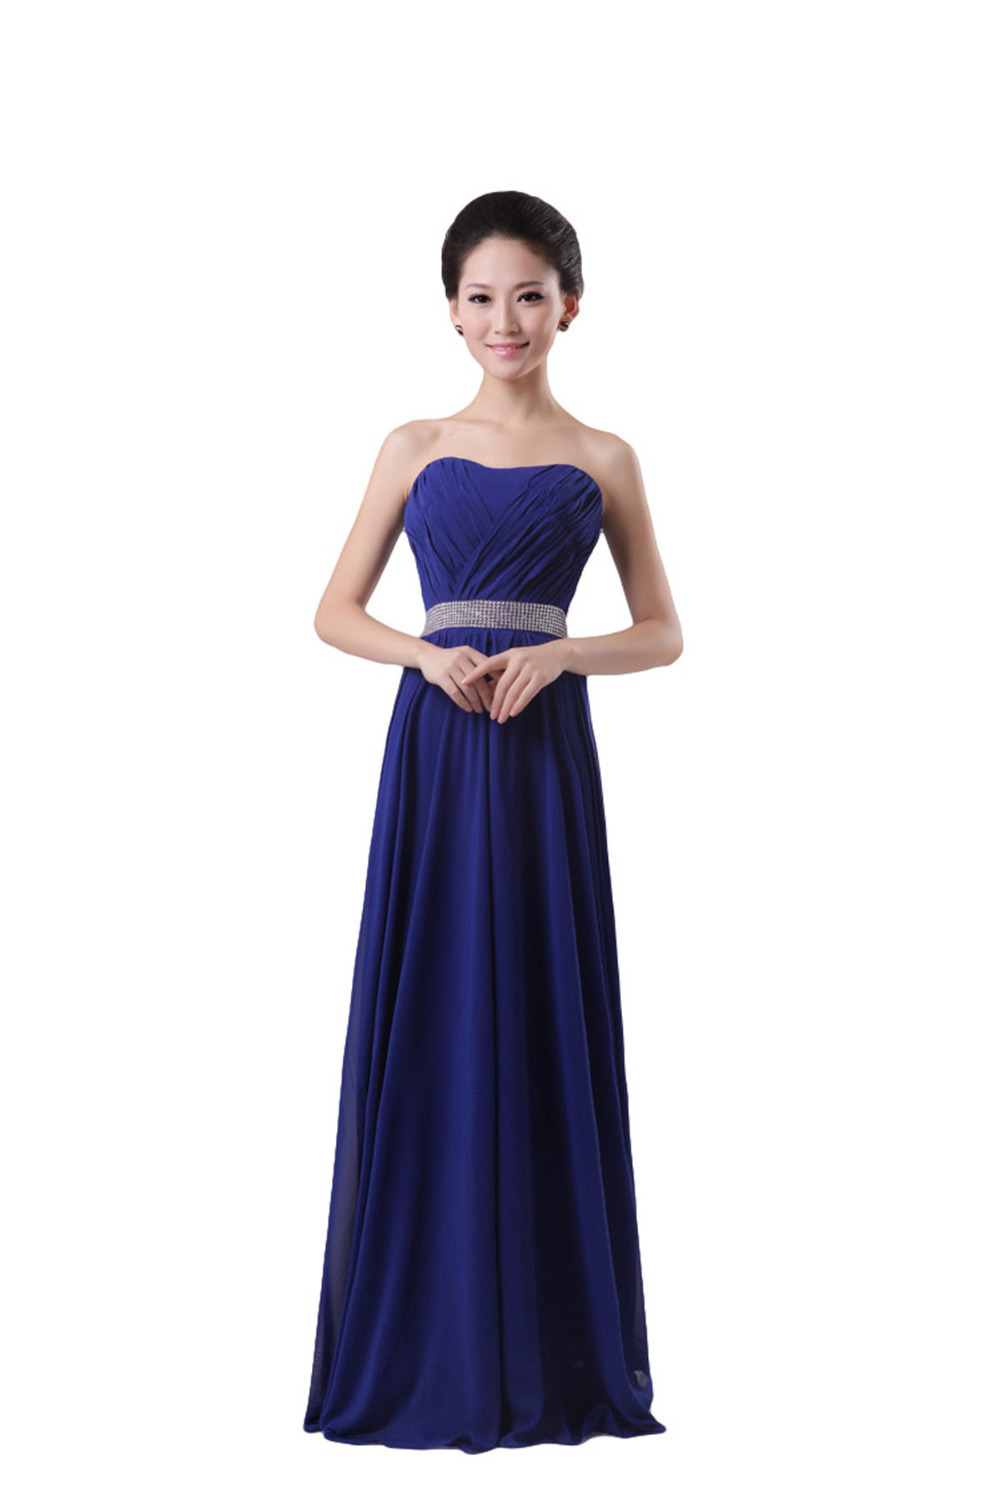 Sexy strapless beading bridesmaid dresses 2014 long for Wedding party dresses cheap